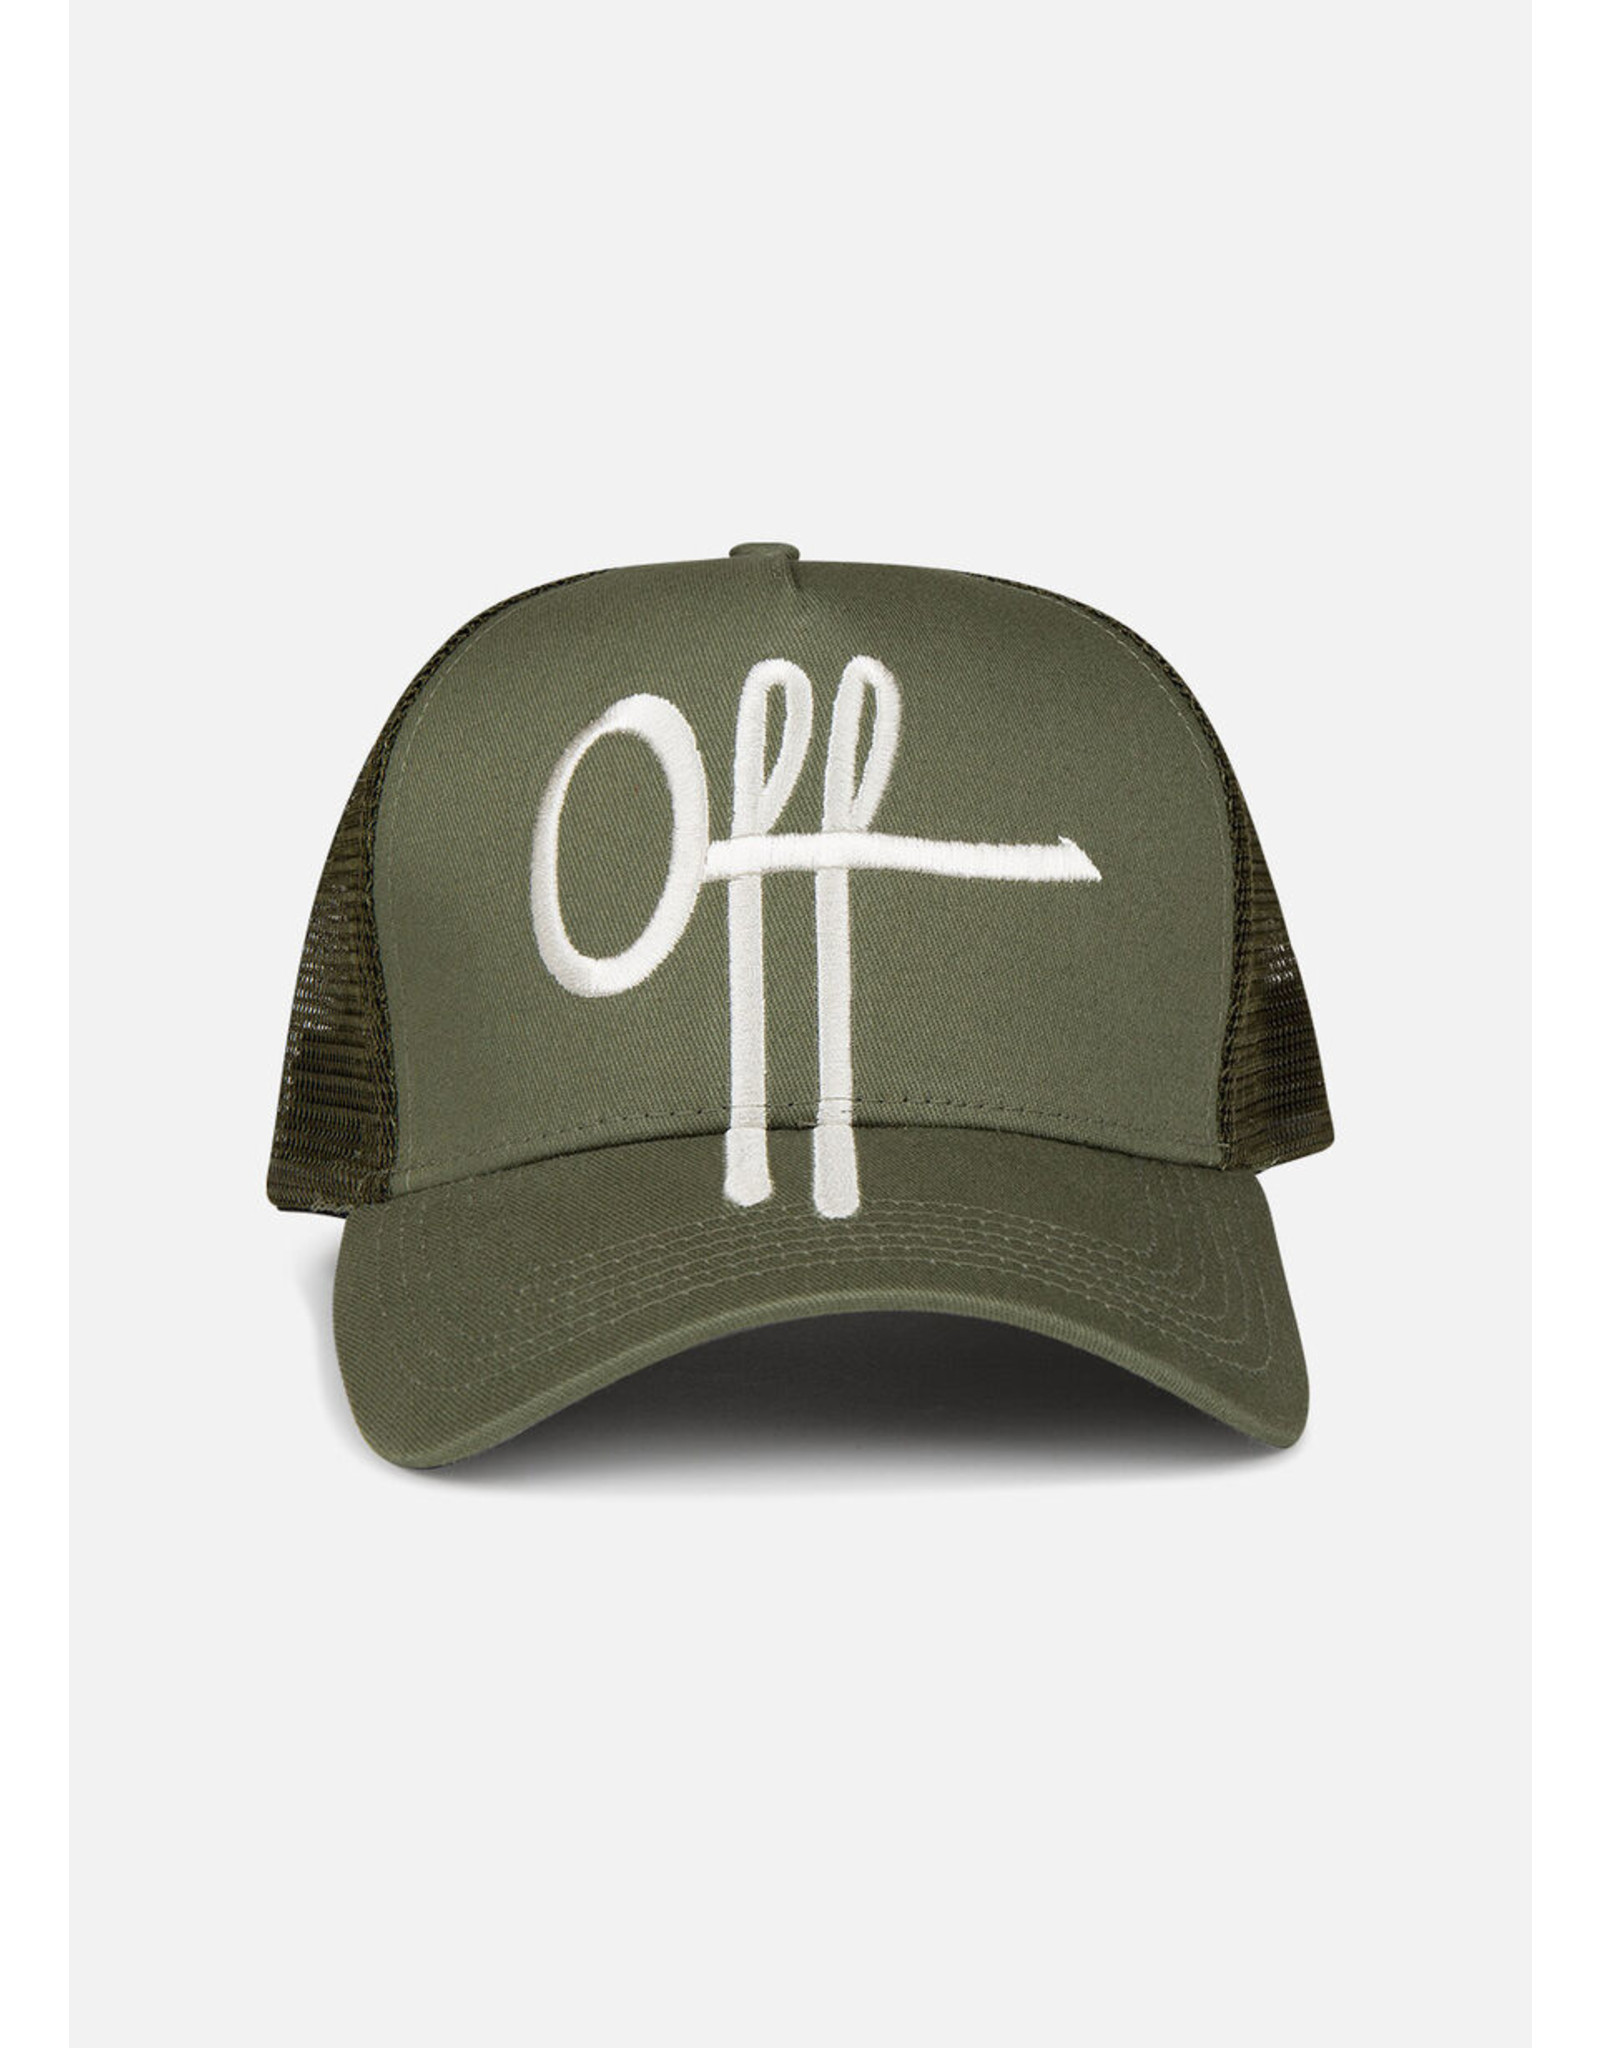 Off the pitch The Sage Trucker